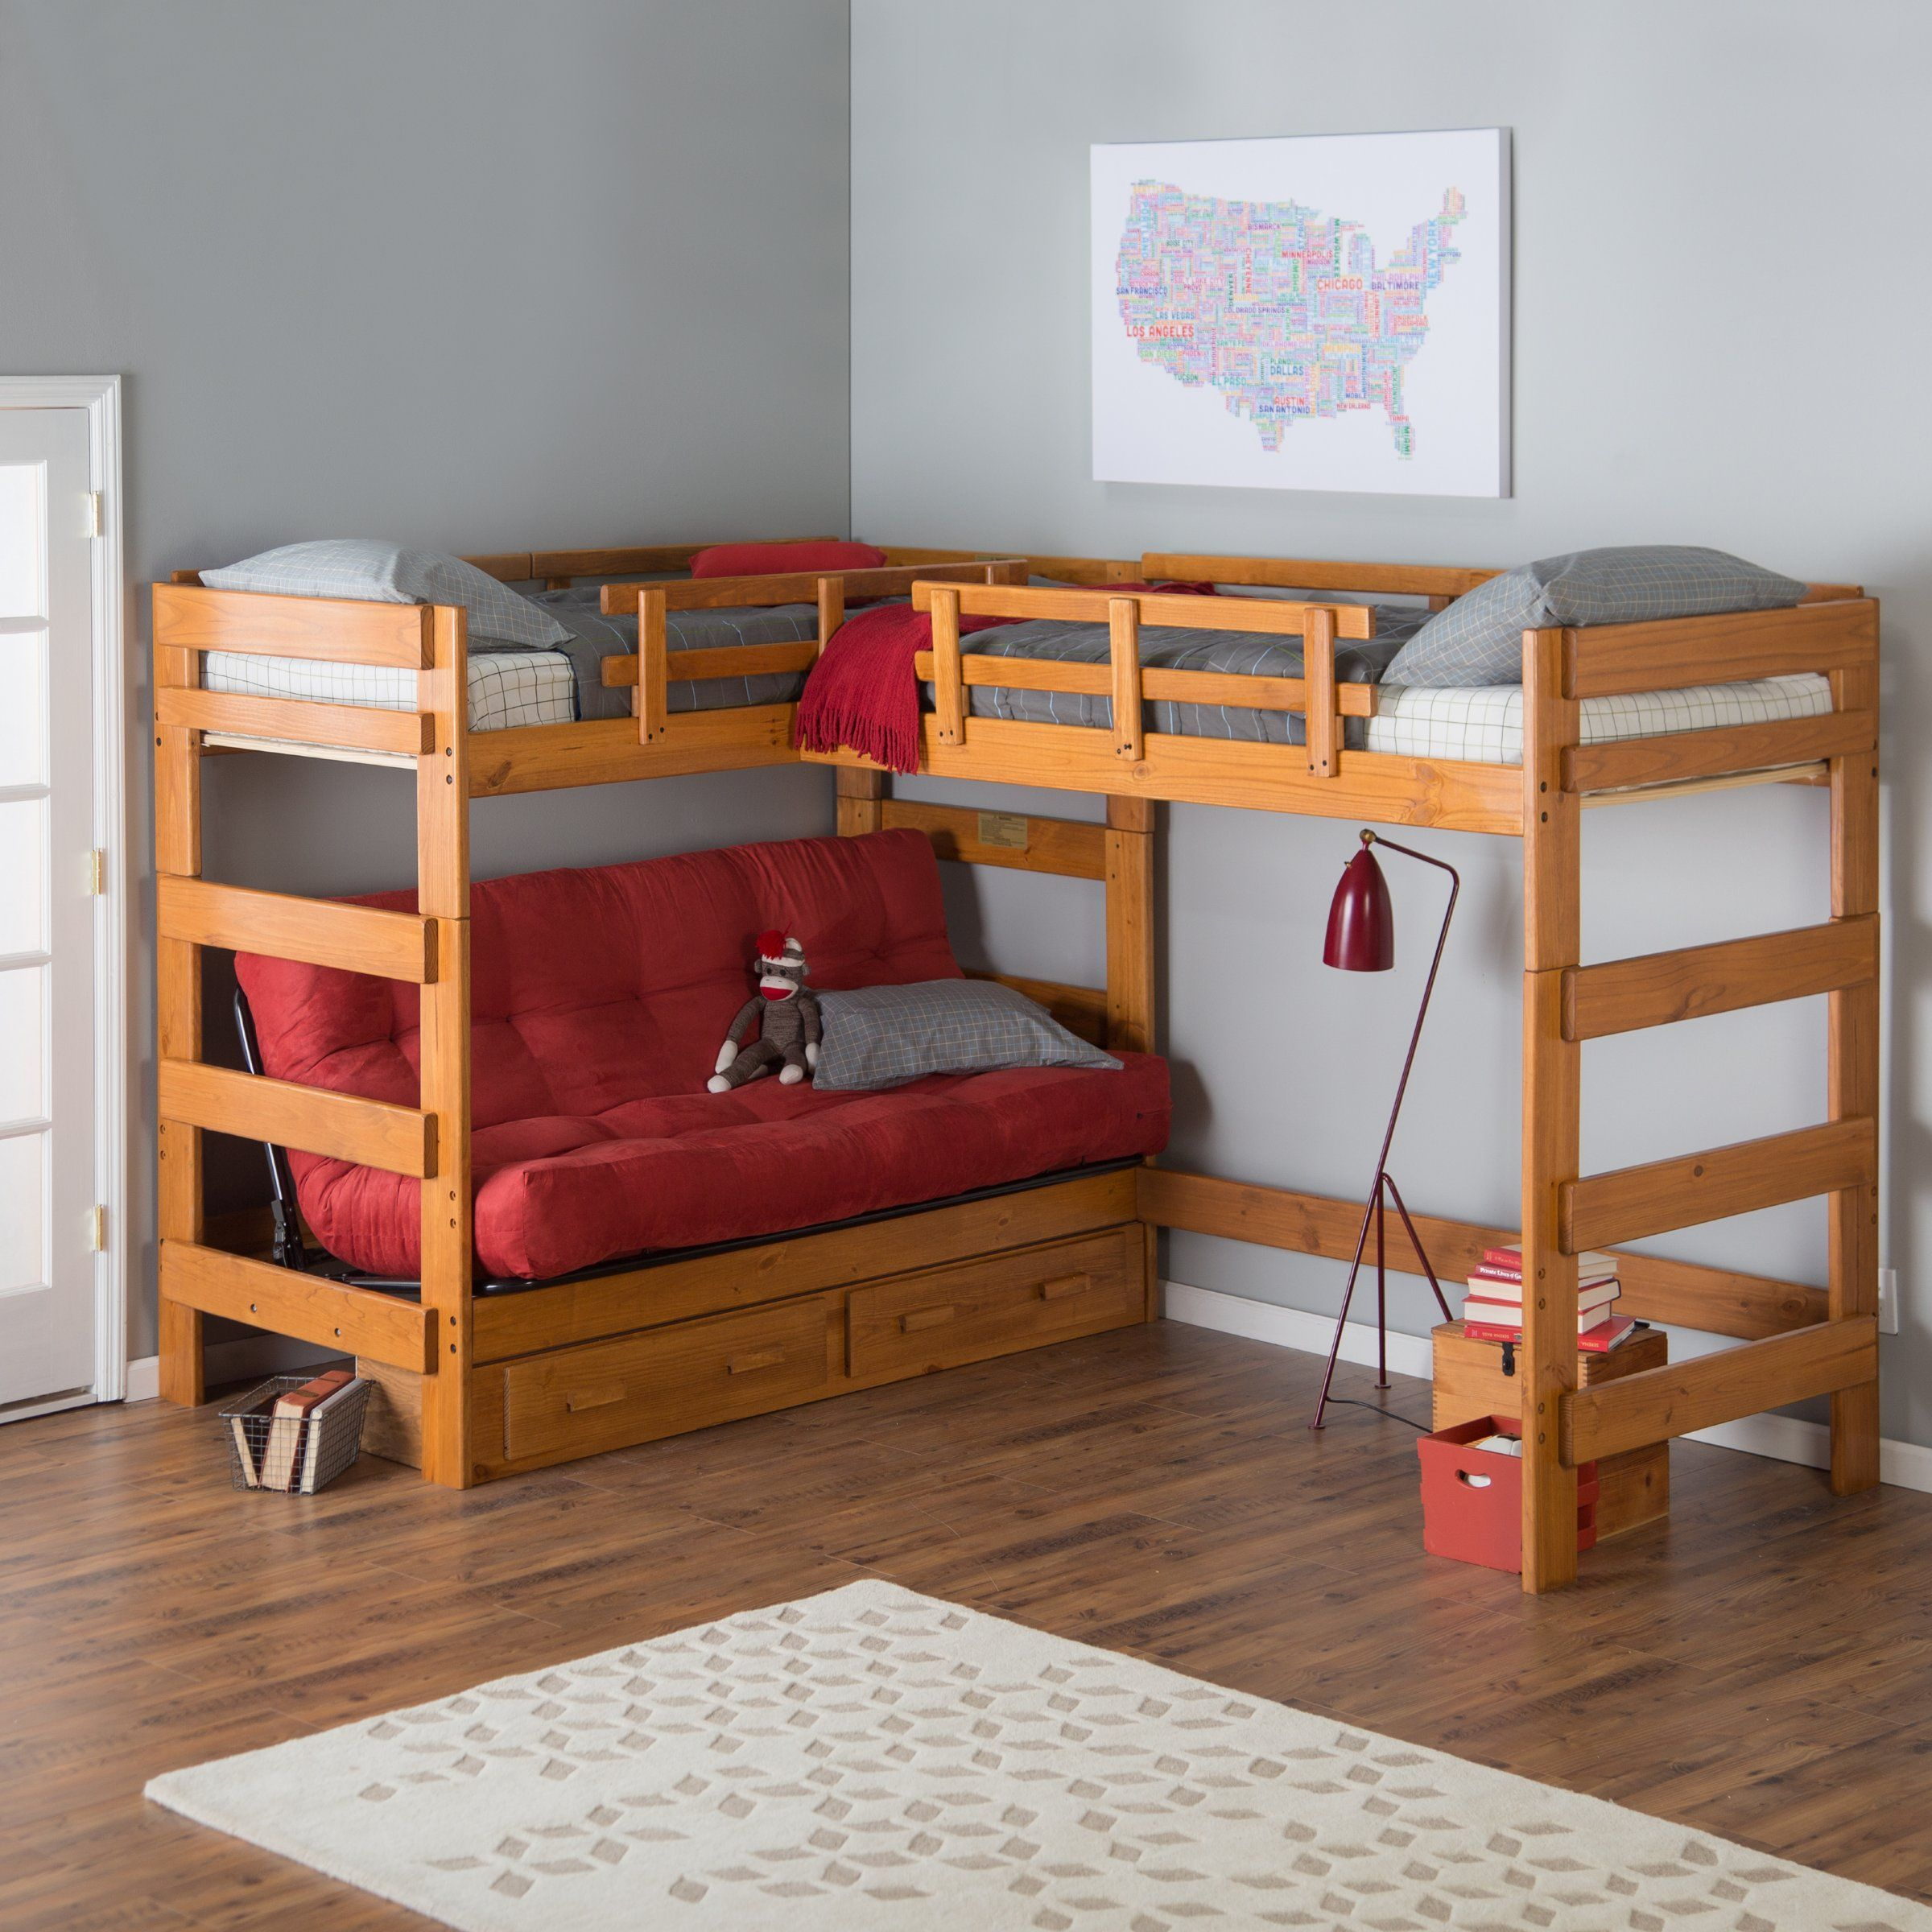 Woodcrest Heartland Futon Bunk Bed with Extra Loft Bed